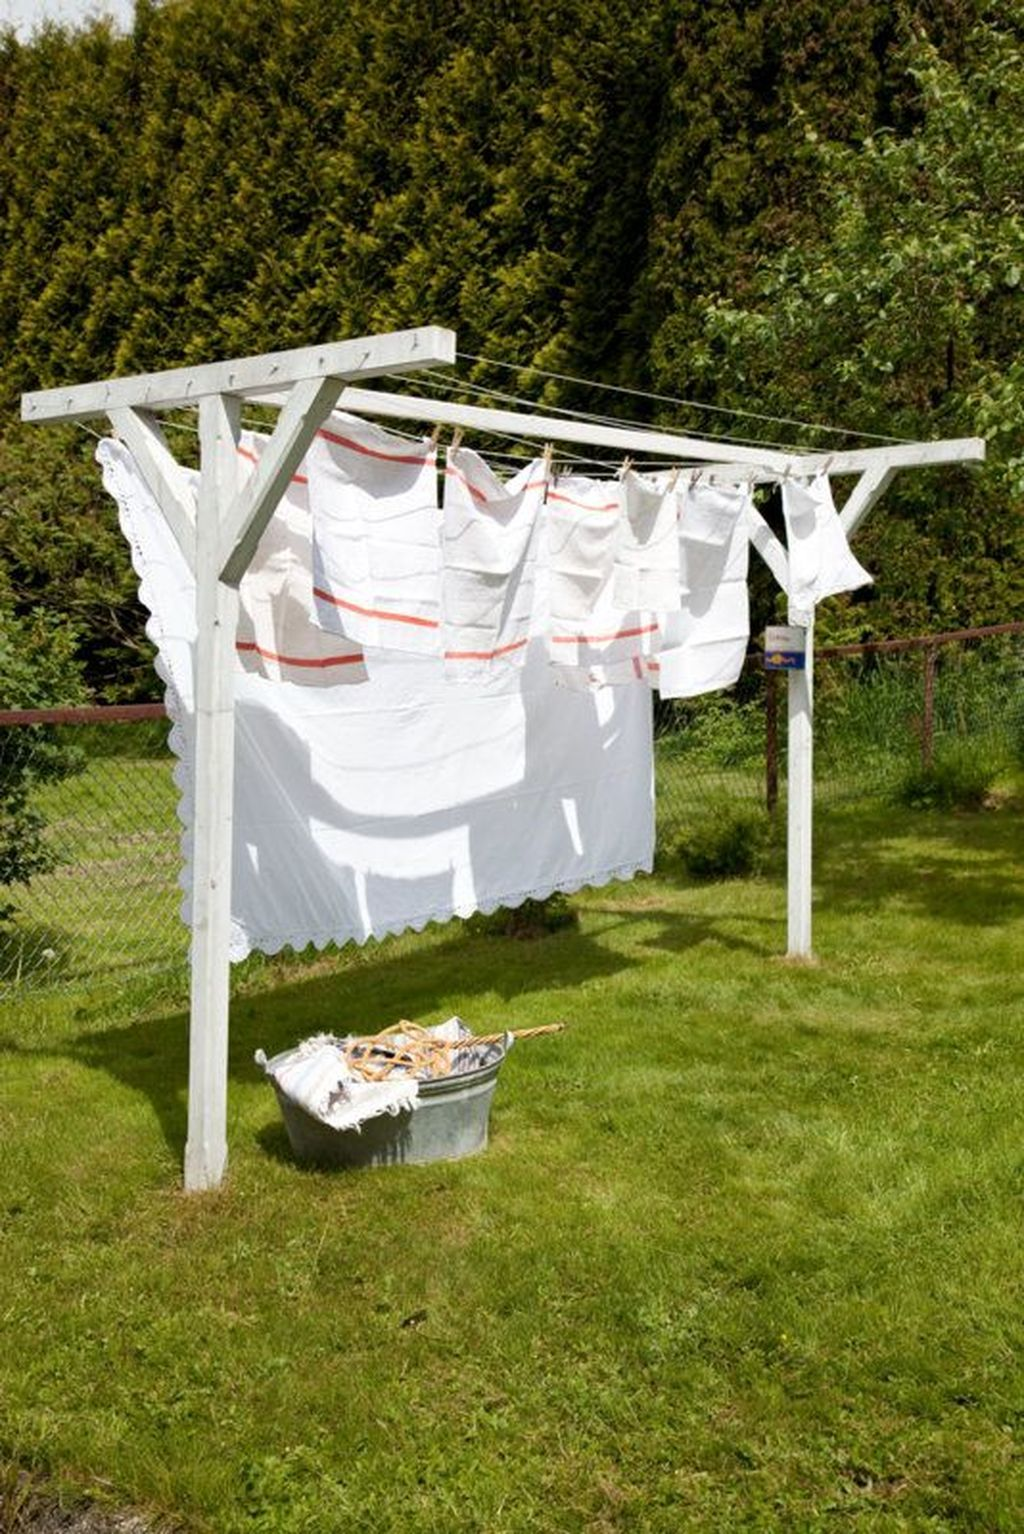 Decoomo Trends Home Decoration Ideas Clothes Line Outdoor Clothes Lines Drying Rack Laundry